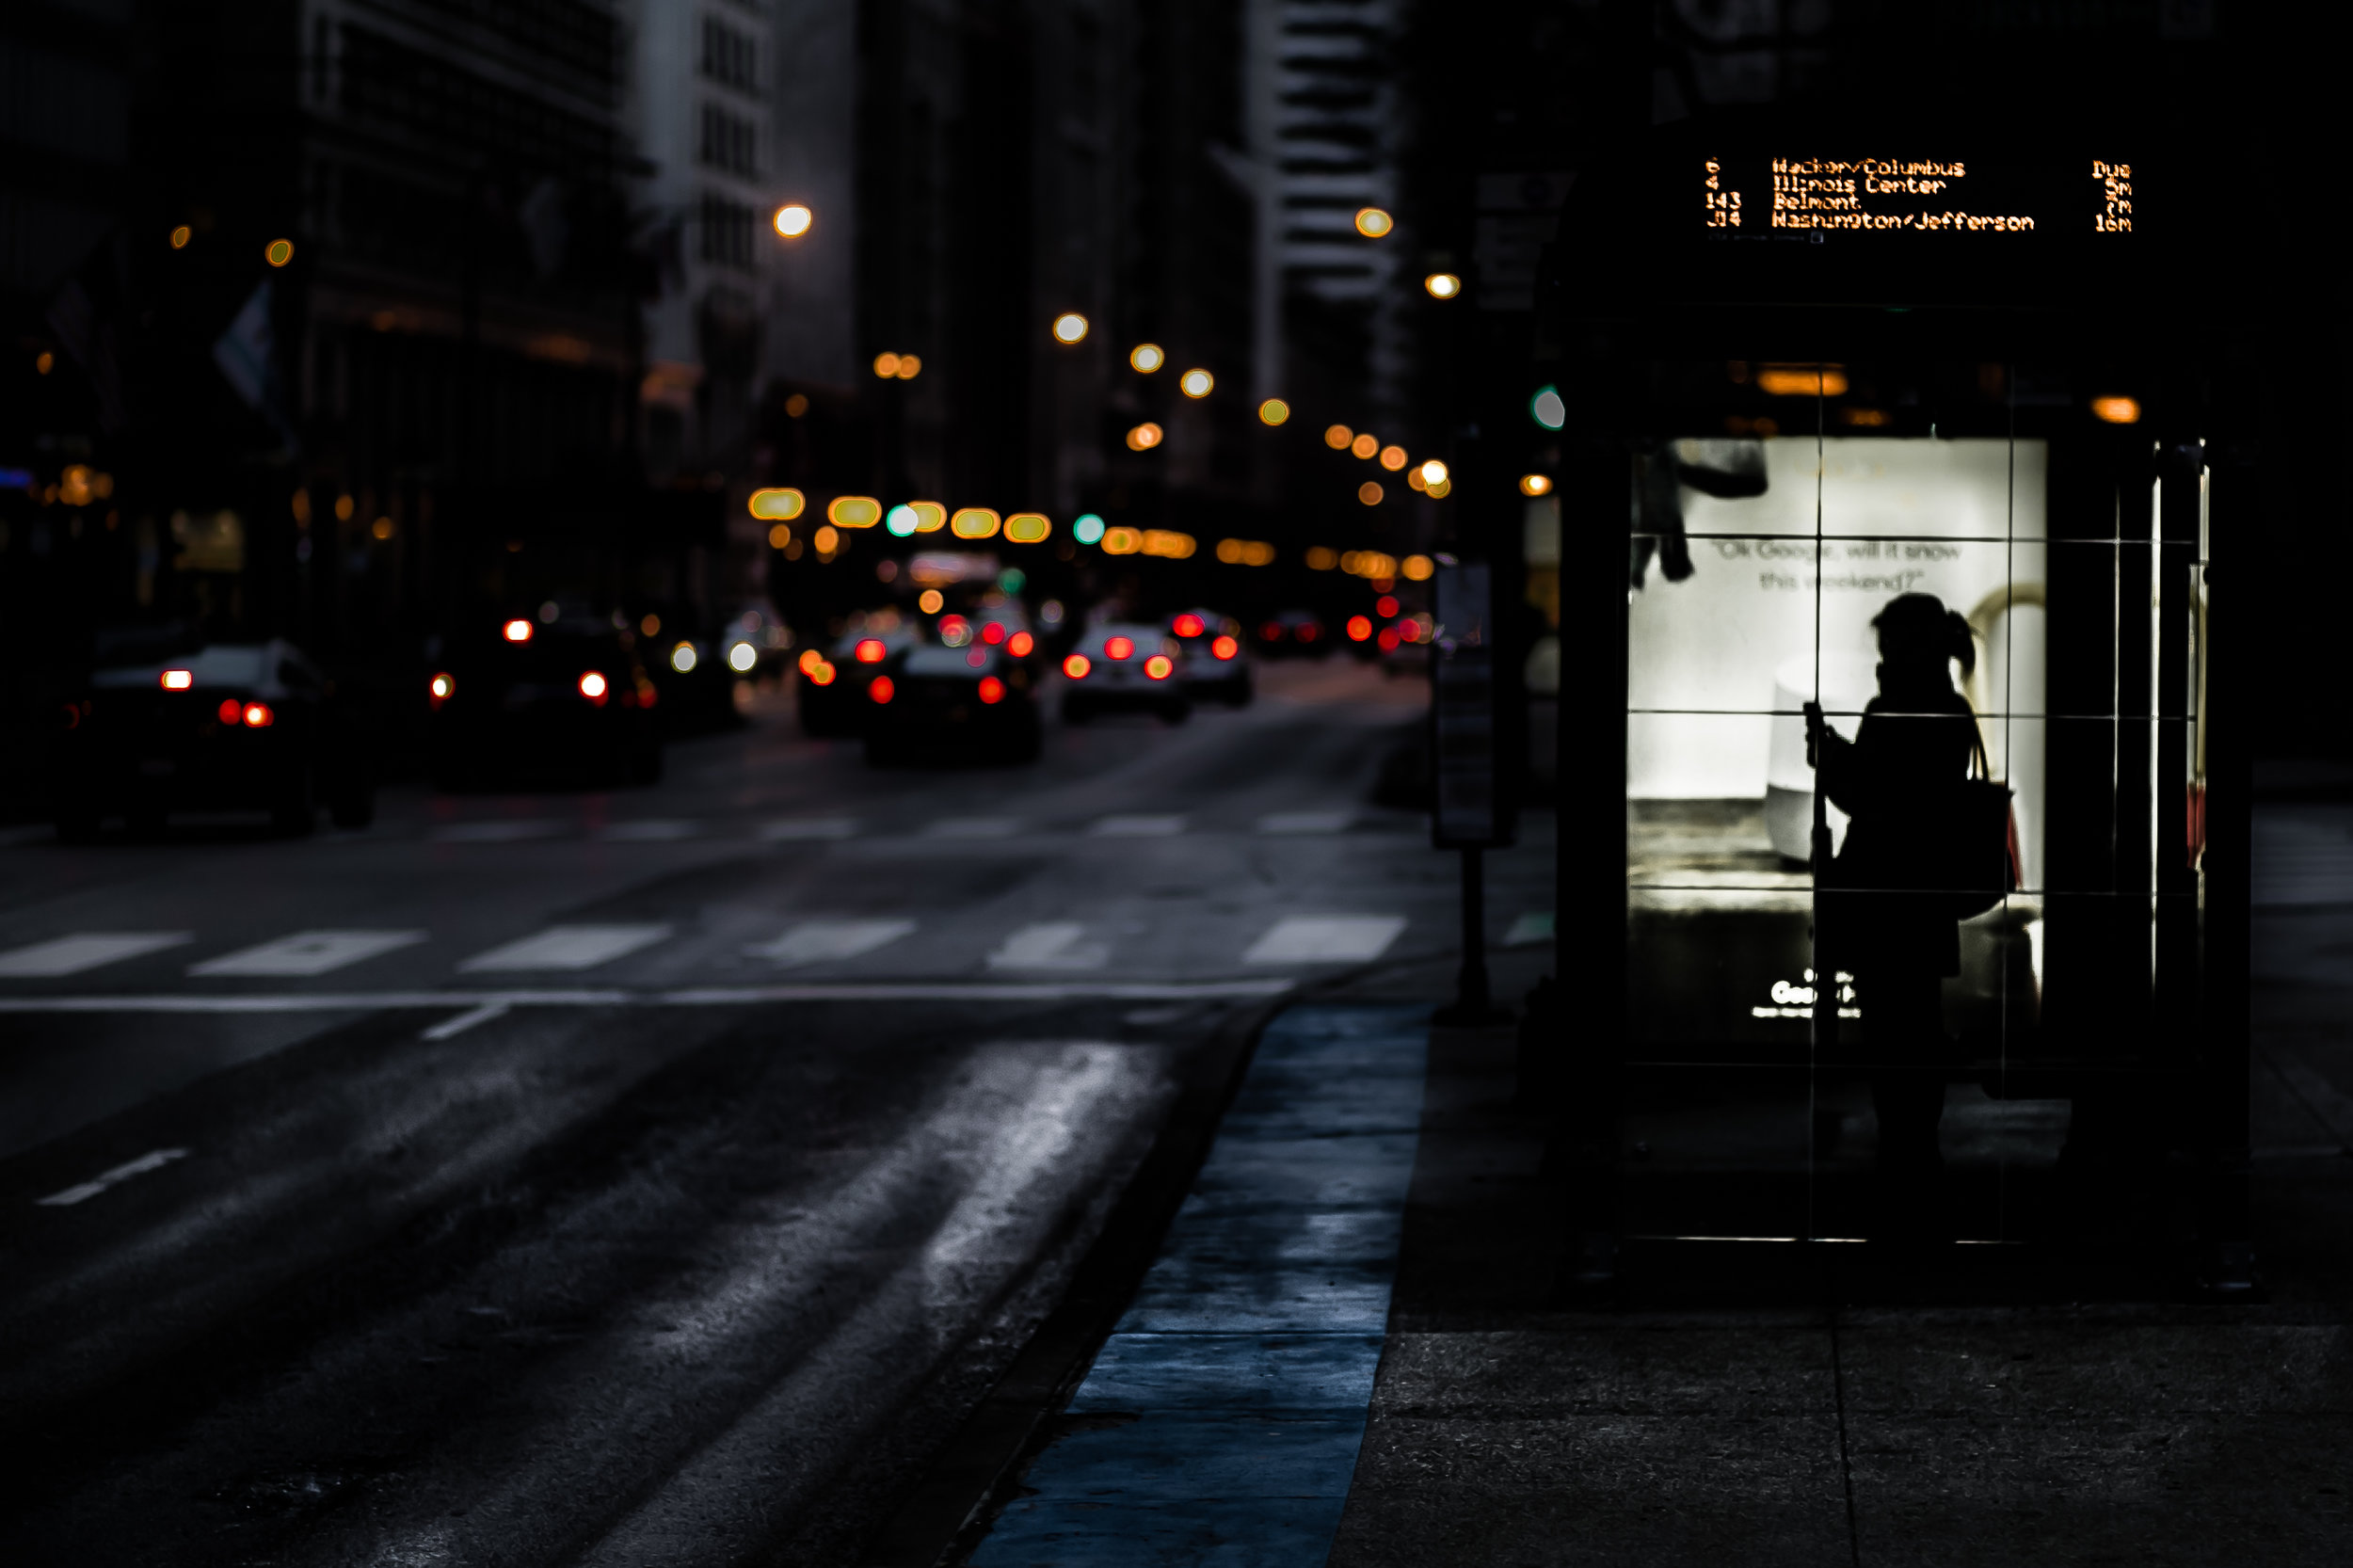 """Standing on the Corner, Waiting for a Bus"": 12x18 print, matted + framed in 16x20 frame, $200"